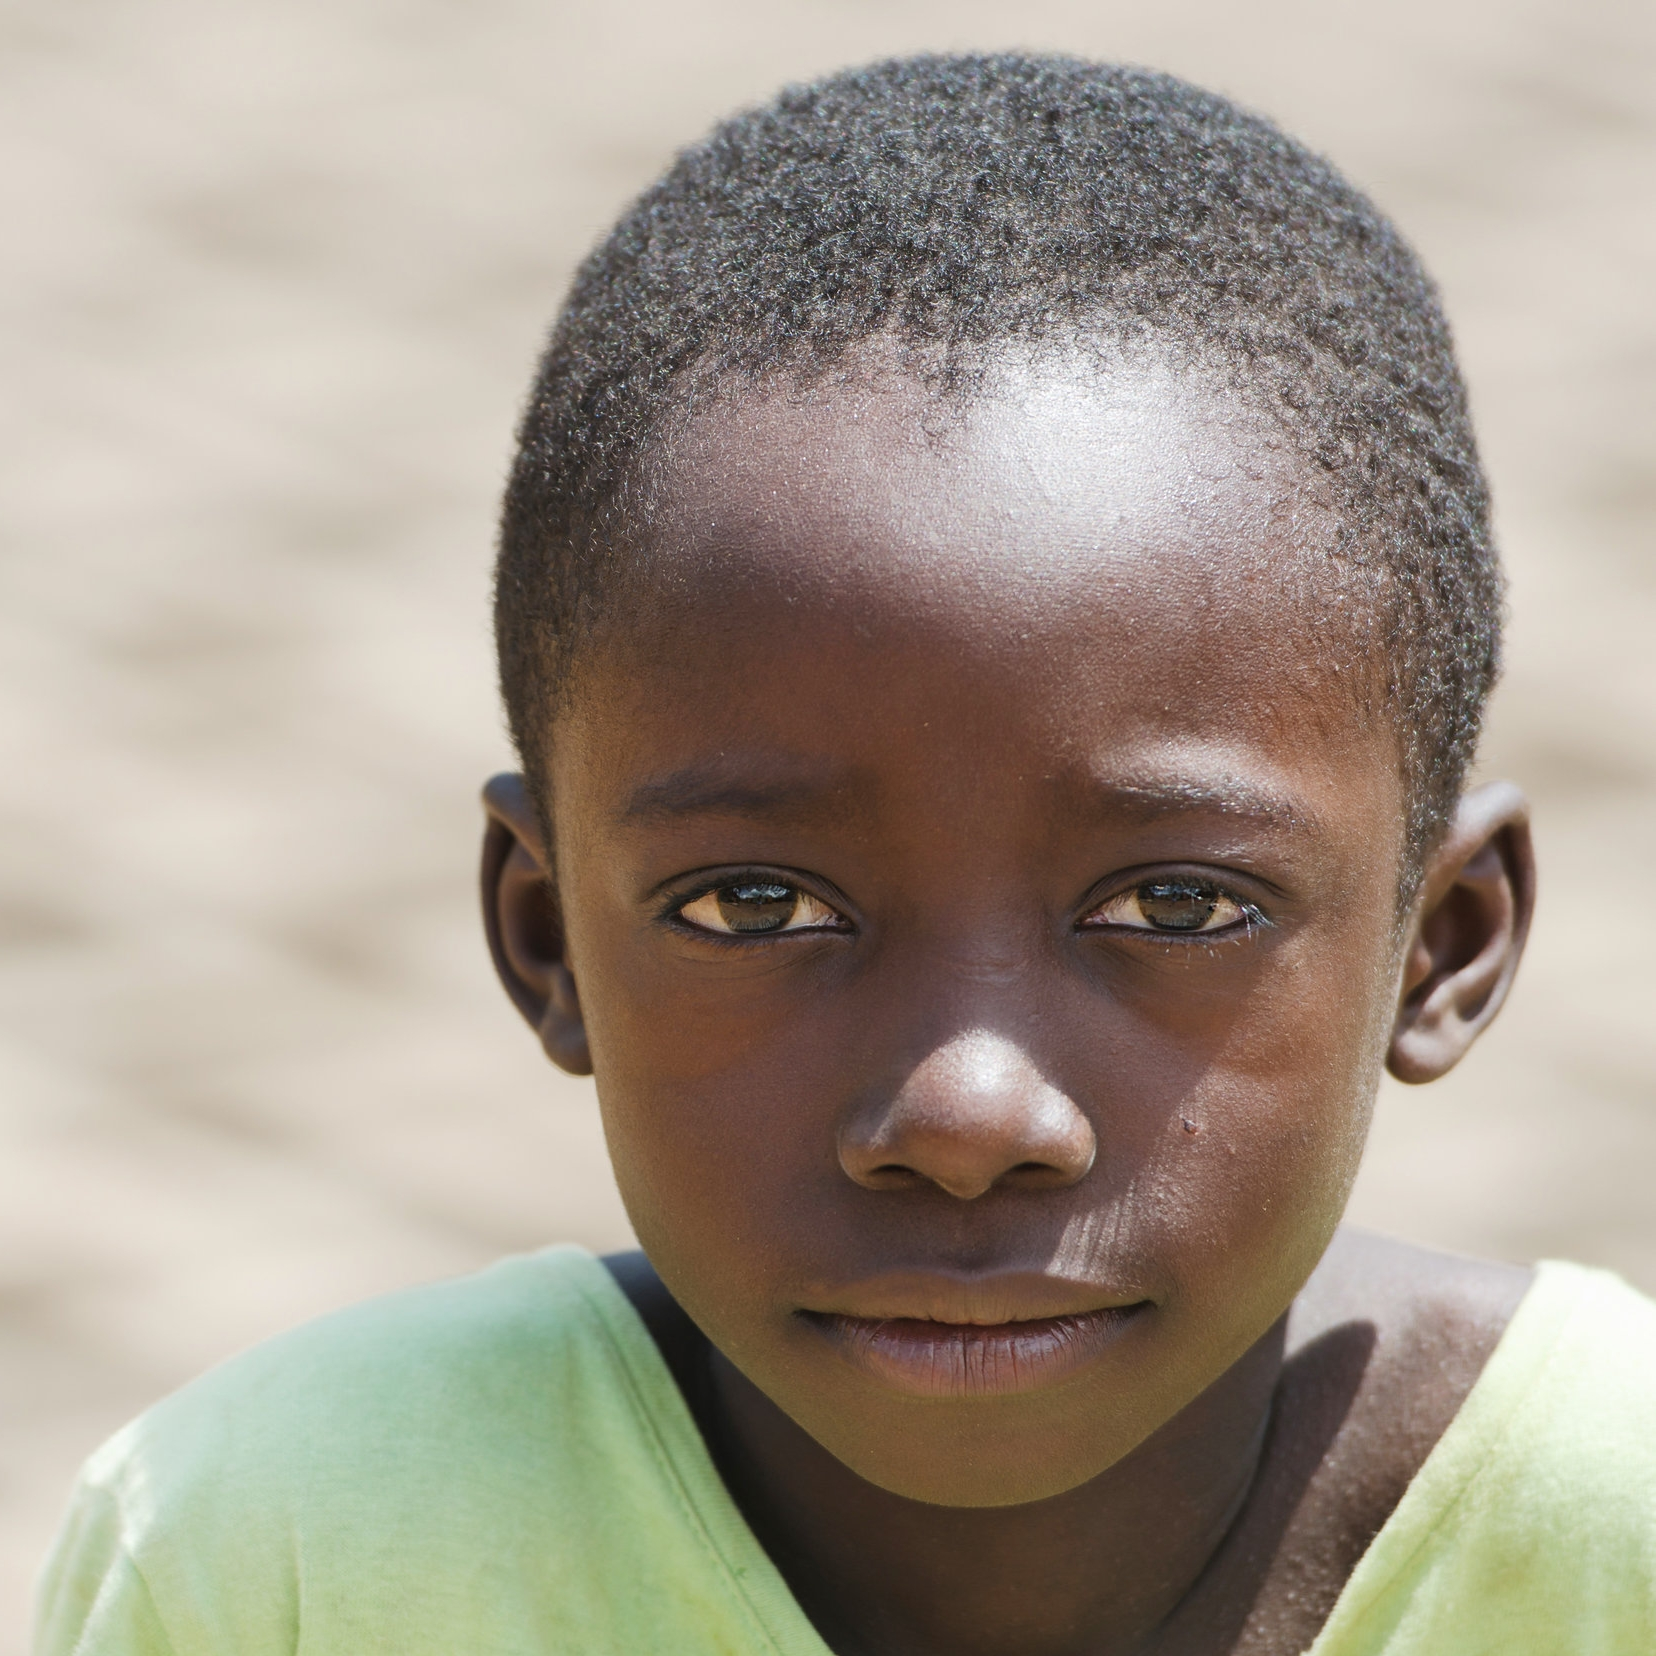 HIV + Aids - One of Africa's most successful HIV prevention and treatment programs.